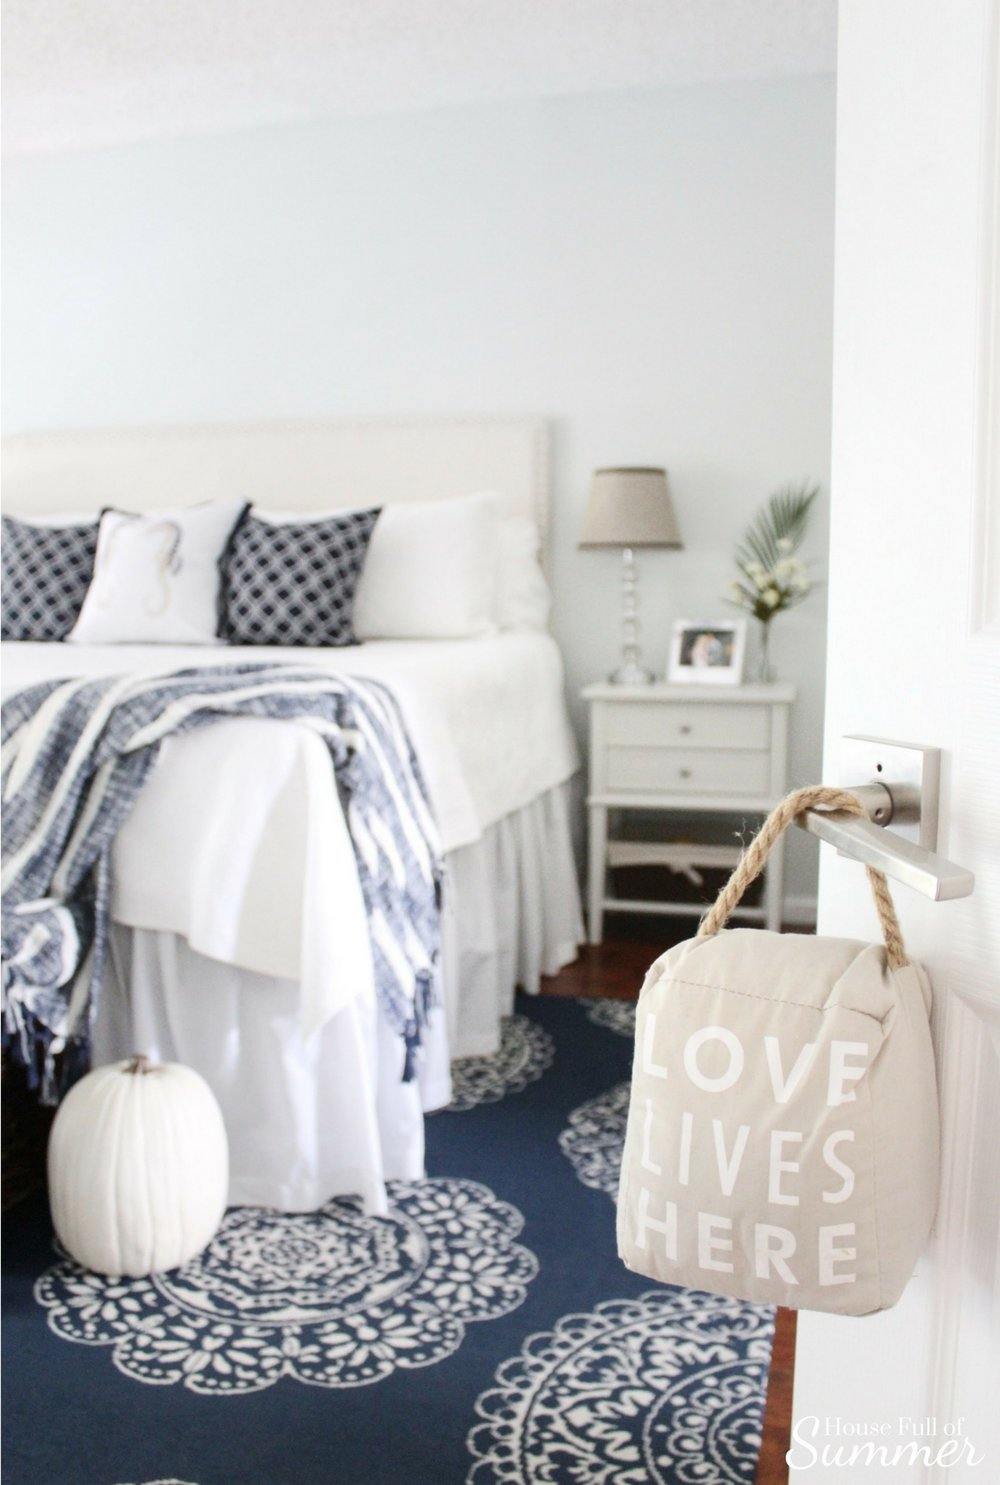 House Full of Summer: Fall Home Tour Blog Hop - Cozy, Coastal, Chic  Master Bedroom decor, navy and white, indoor/outdoor rug, cheap rugs, decorating on a budget, white bedding, fall decor ideas, white pumpkins, coastal bedroom ideas